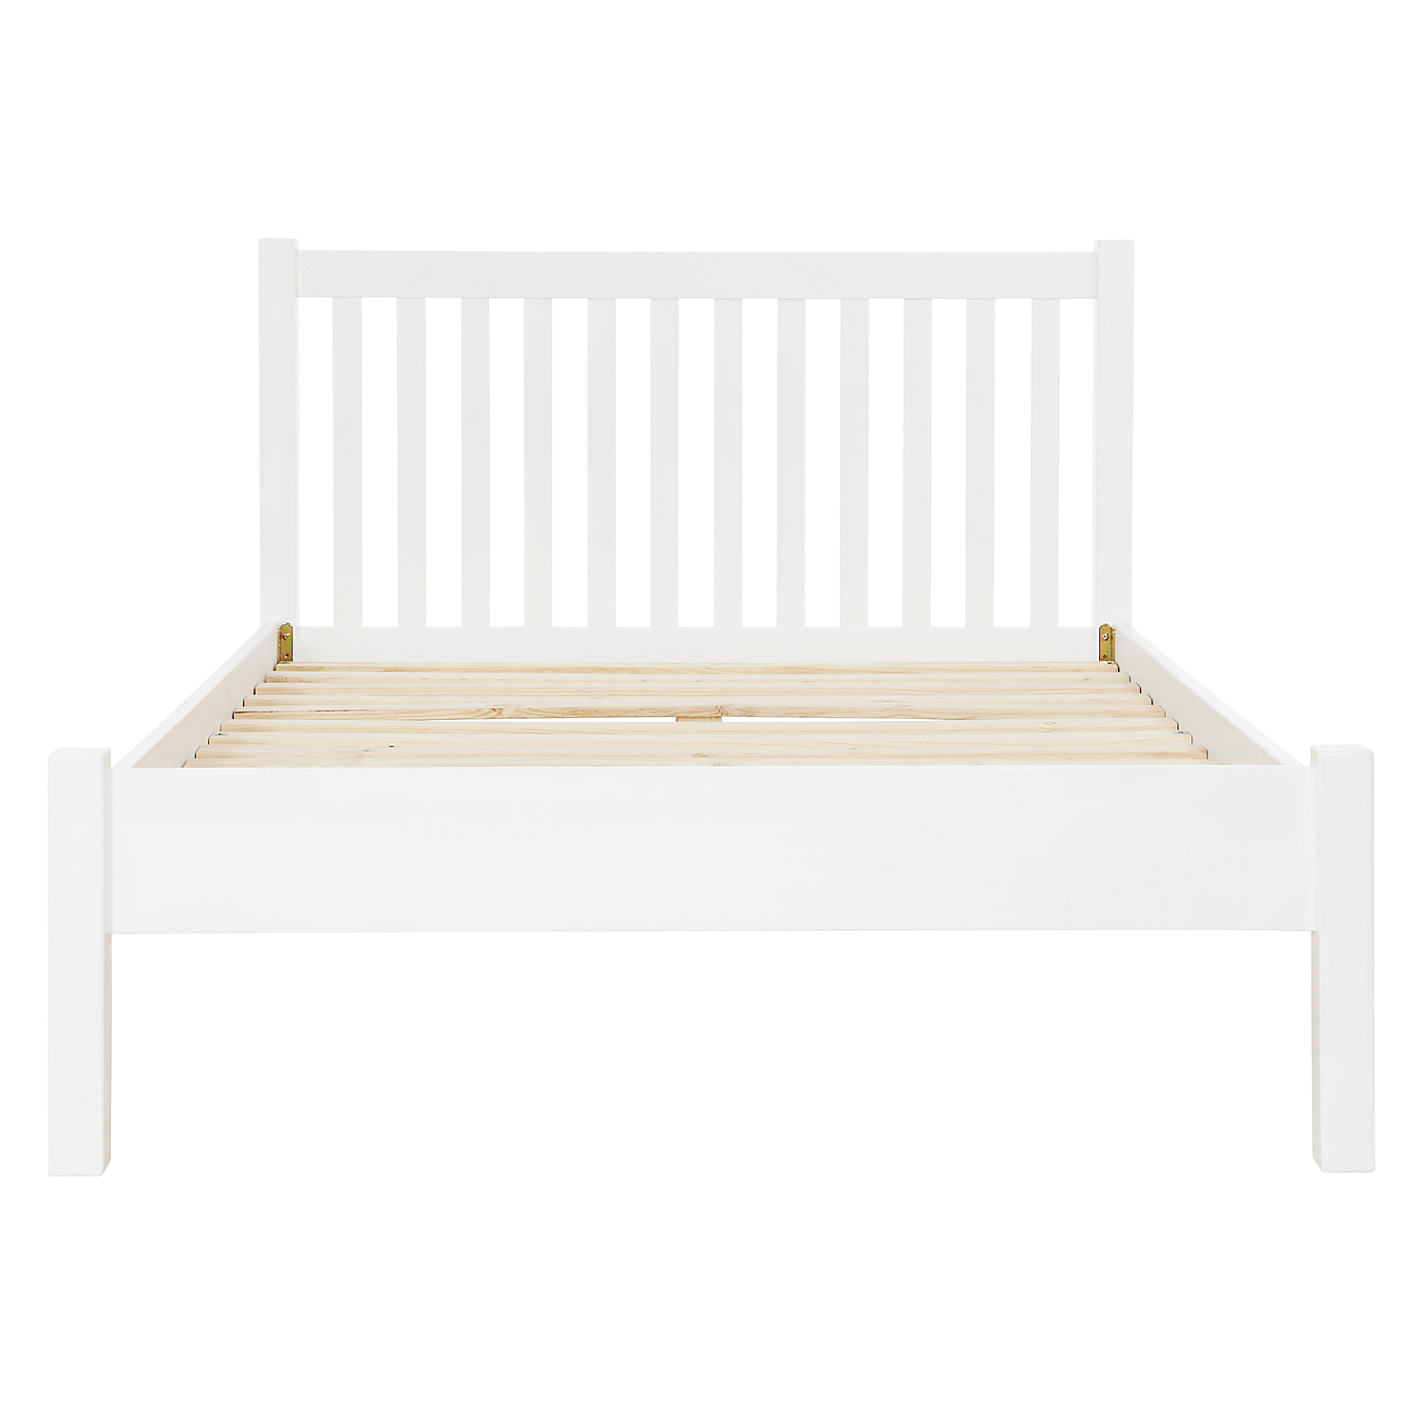 buy john lewis wilton bed frame double  john lewis -  buy john lewis wilton bed frame double online at johnlewiscom